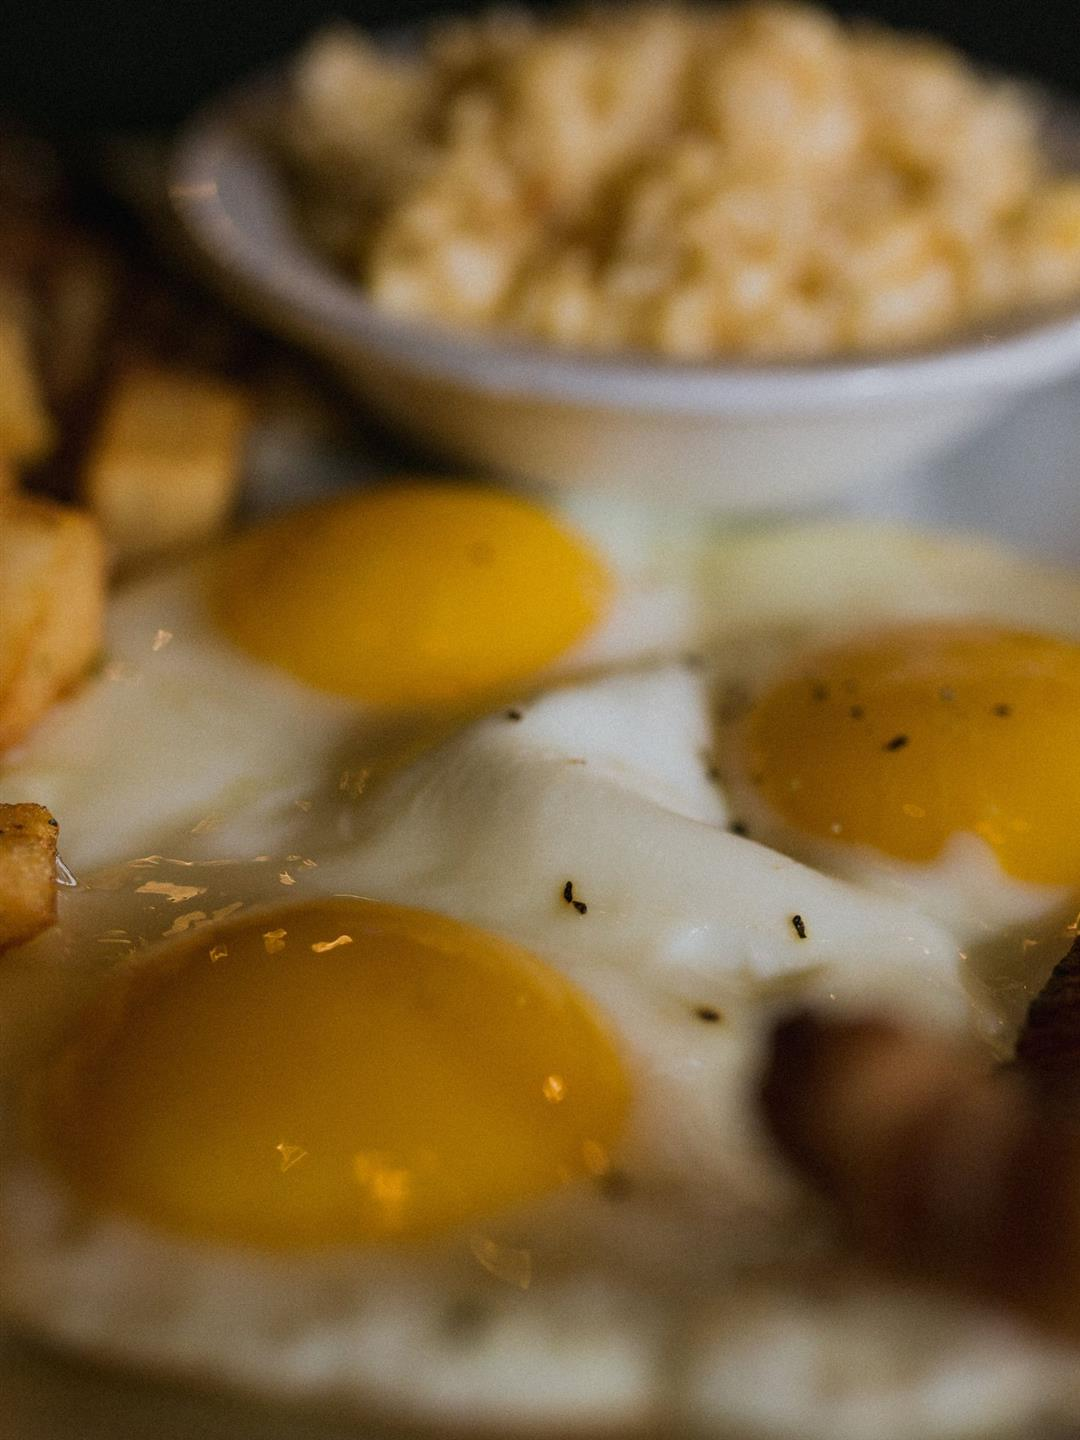 Three fried eggs on a plate with breakfast potatoes